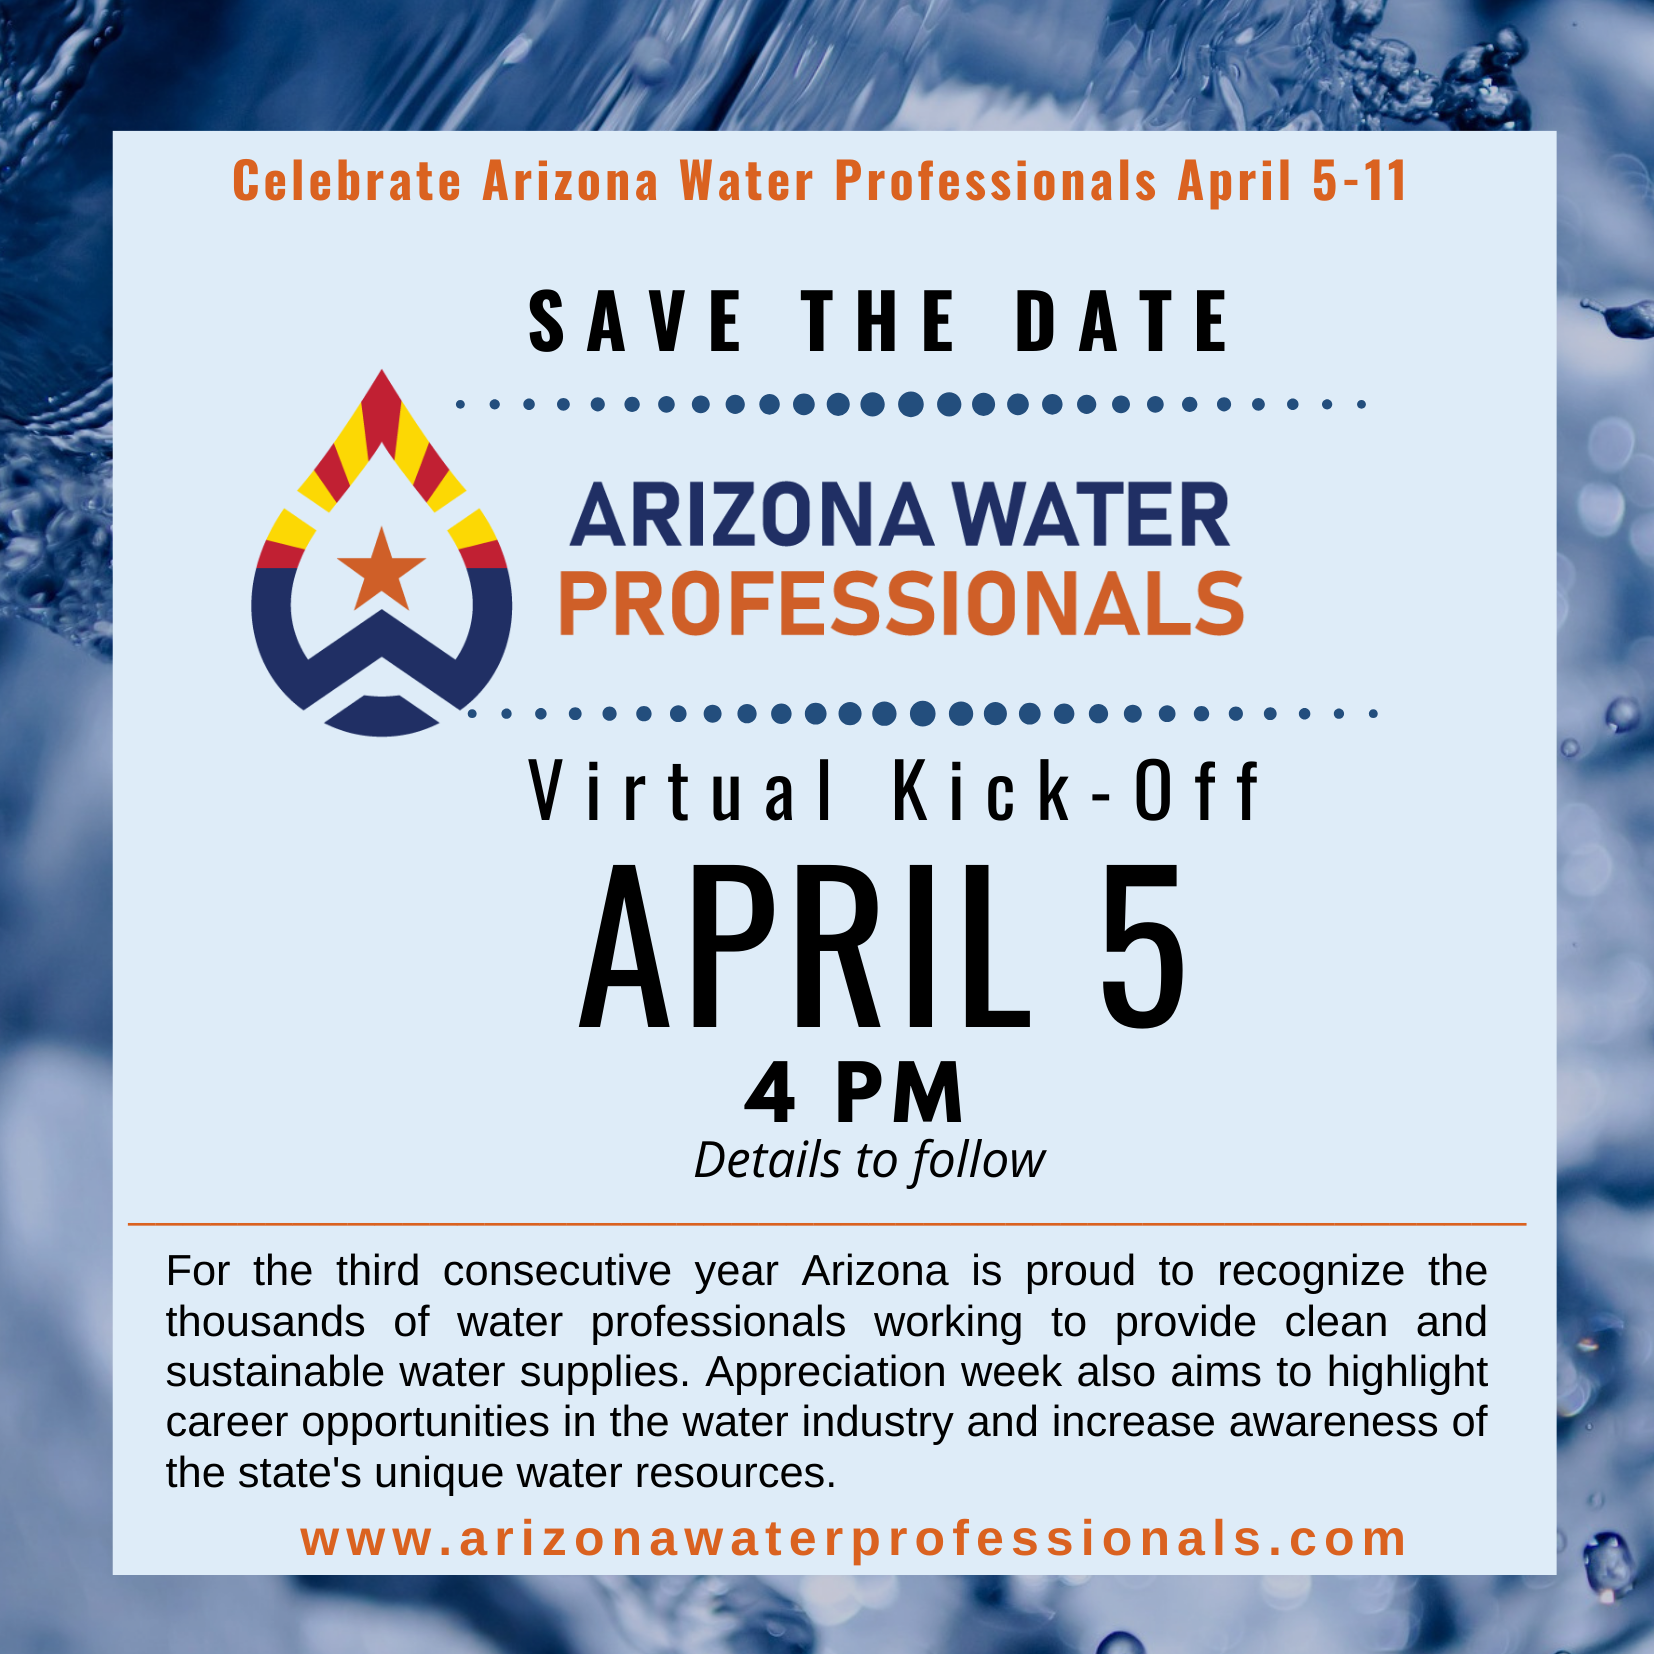 Virtual Kickoff for Arizona Water Professionals Apreciation Week April 5th at 4pm